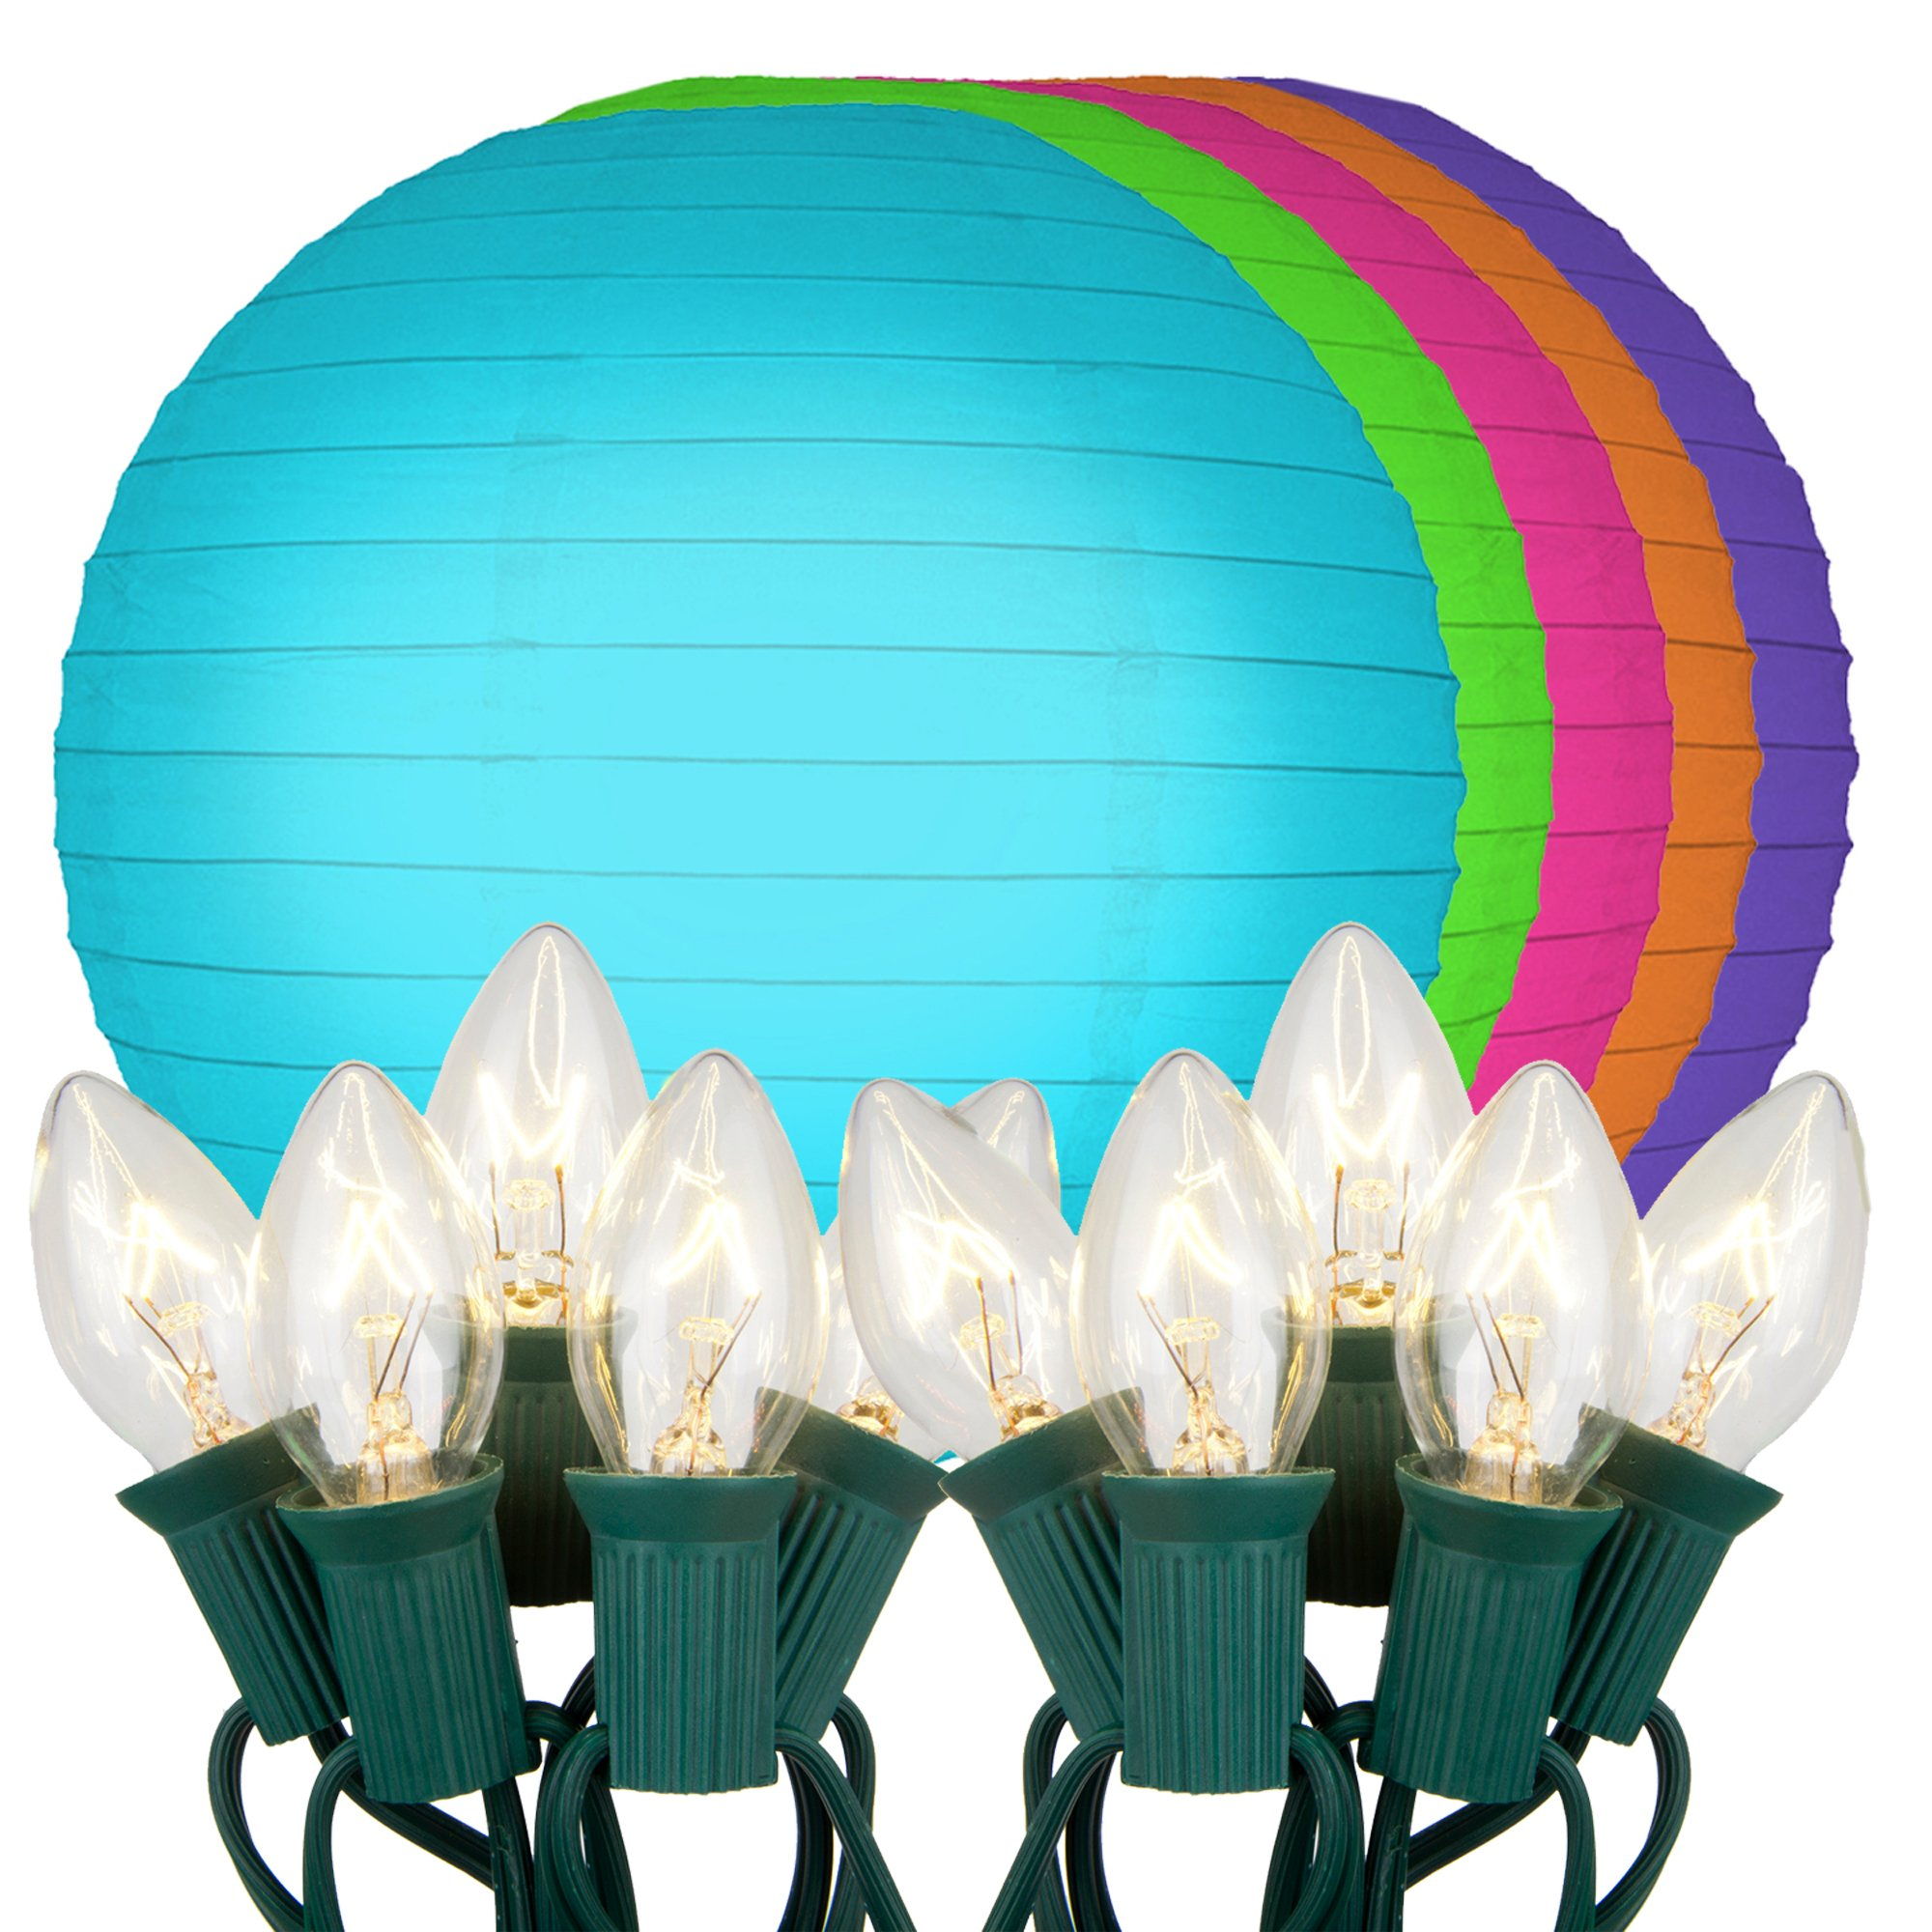 Lumabase 24910 10 Count Electric String Lights with Paper Lanterns, 10'', Multicolor